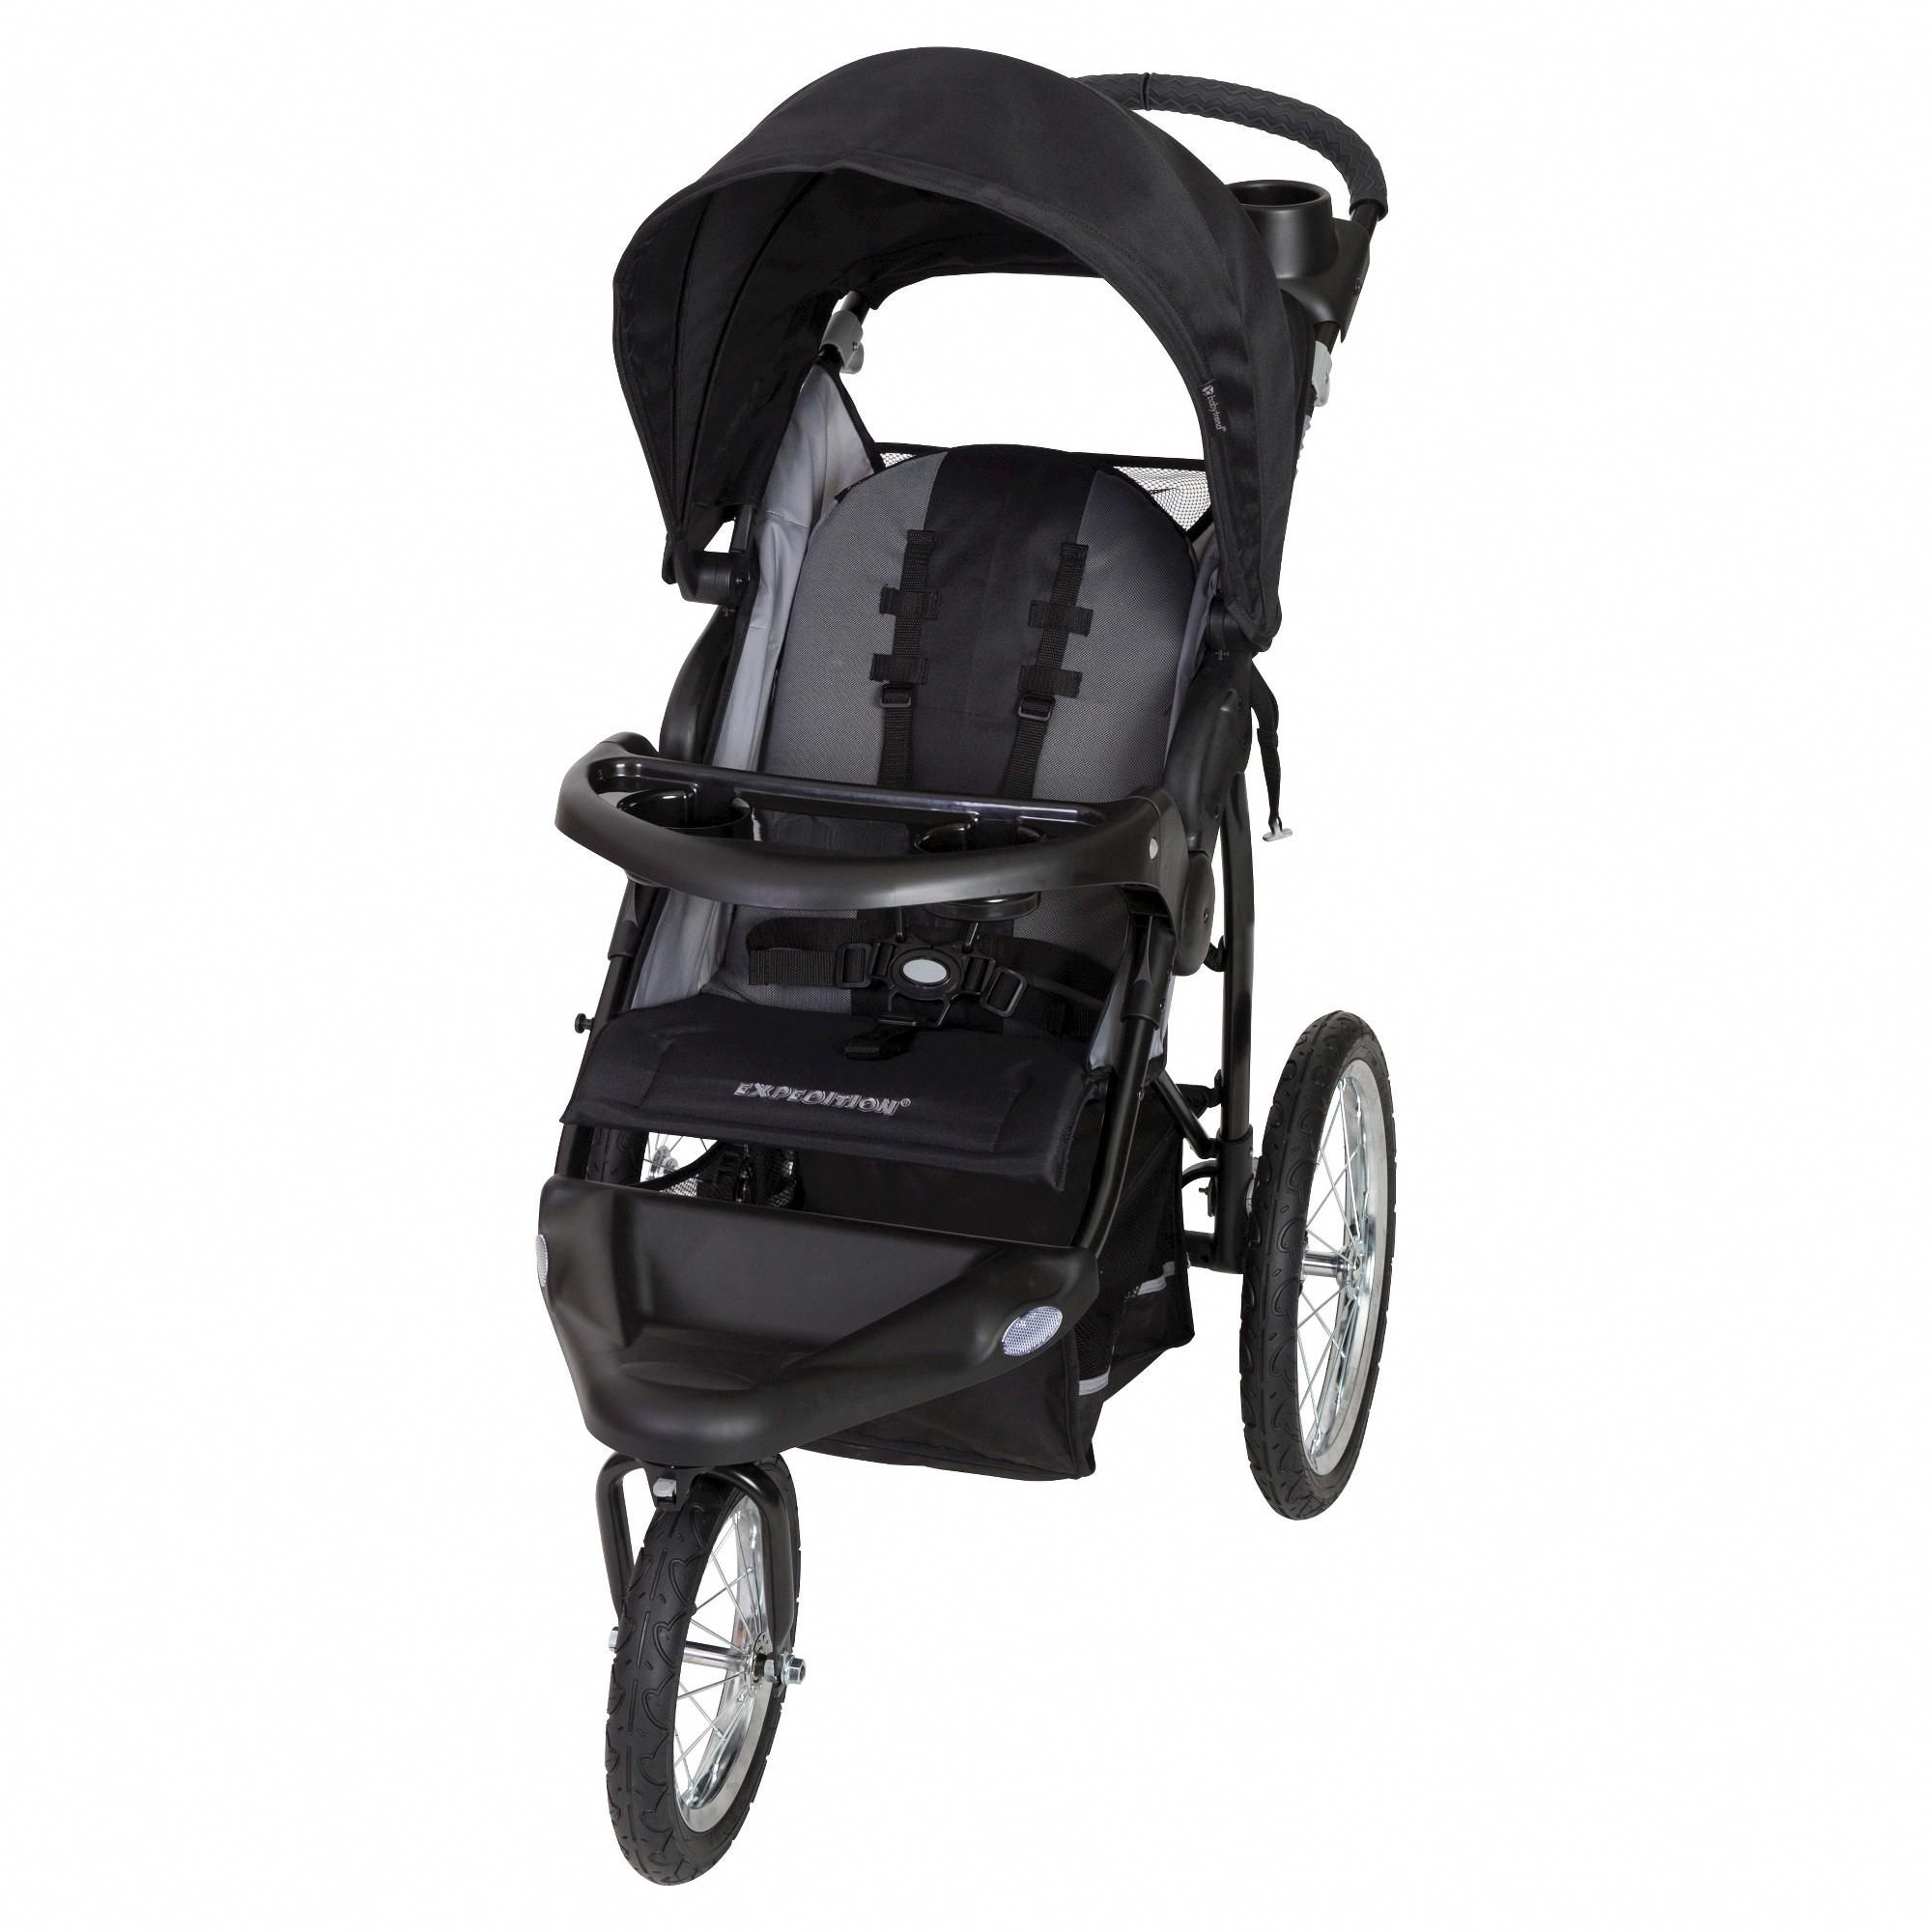 Baby Jogger Summit X3 Double Jogging Stroller Baby trend